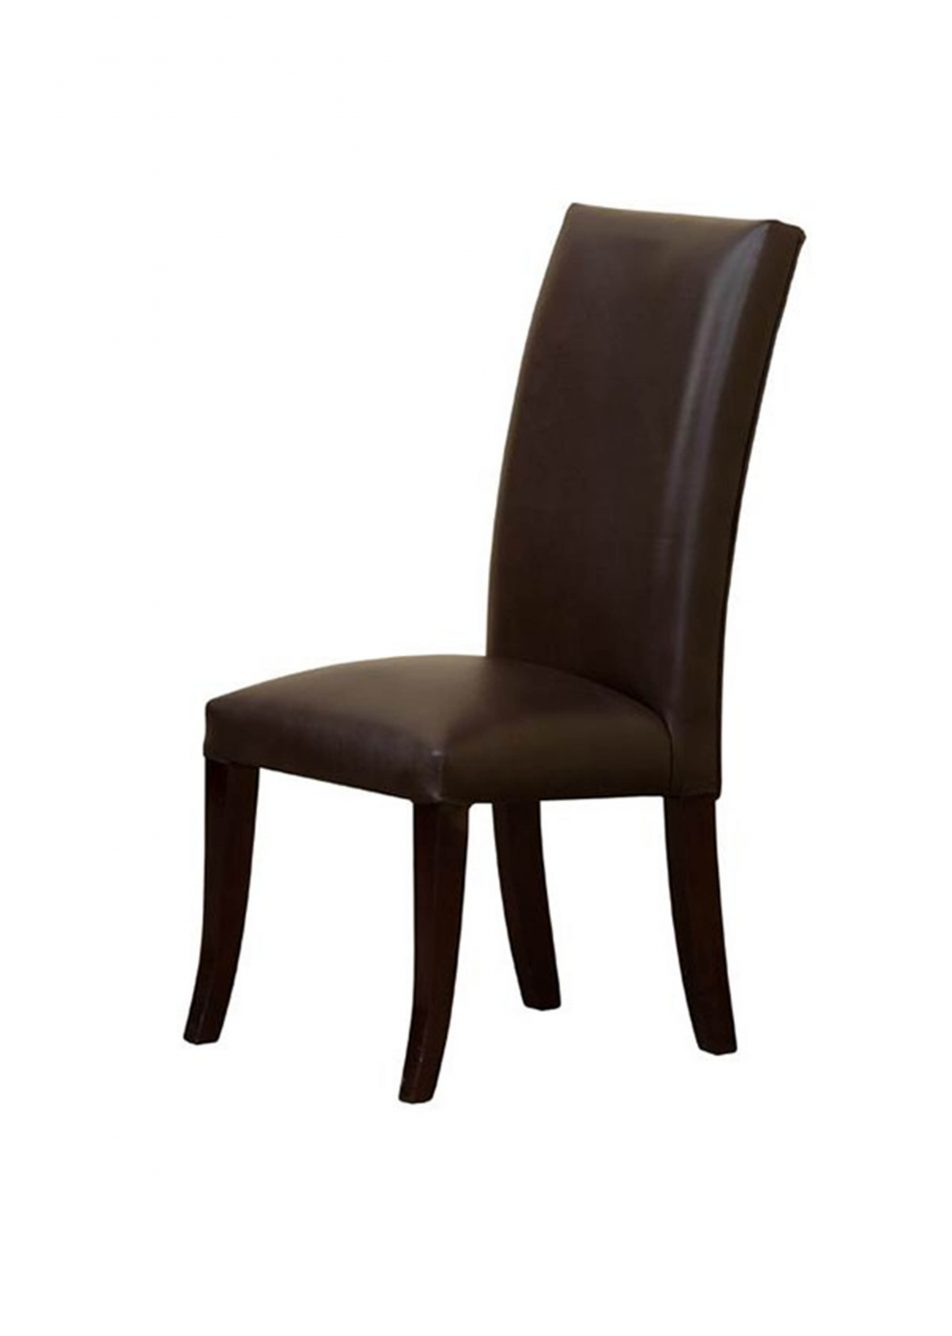 House Haven Dining Chairs 0002 Sydney Dining Chair Leather